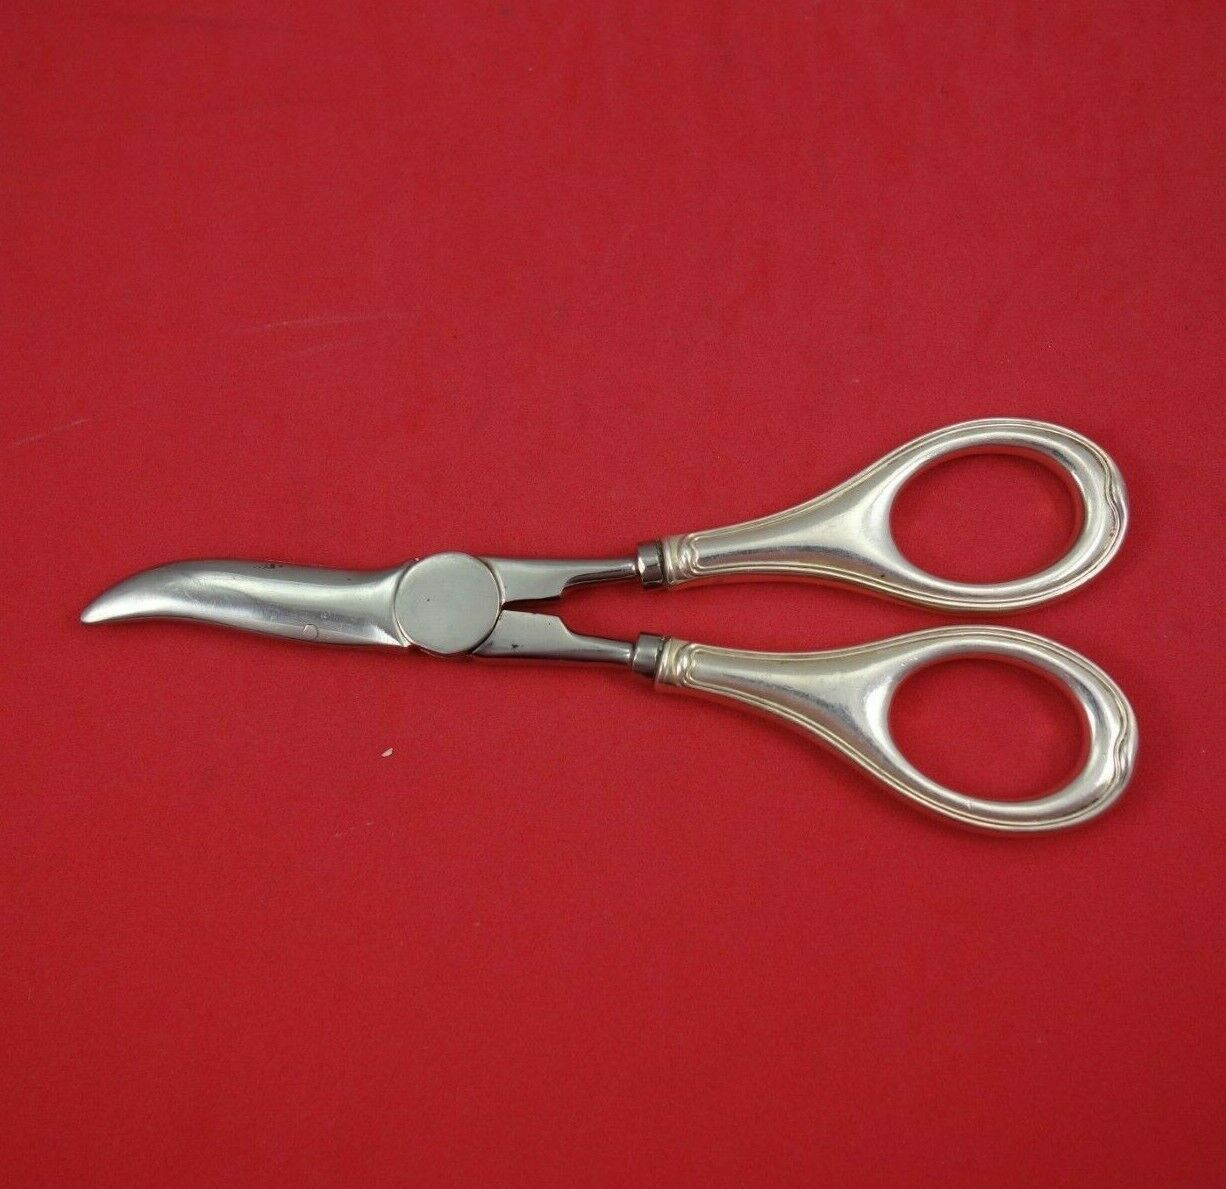 Primary image for Th. Marthinsen Silverplate Grape Shears Hollow Handle 6 5/8""